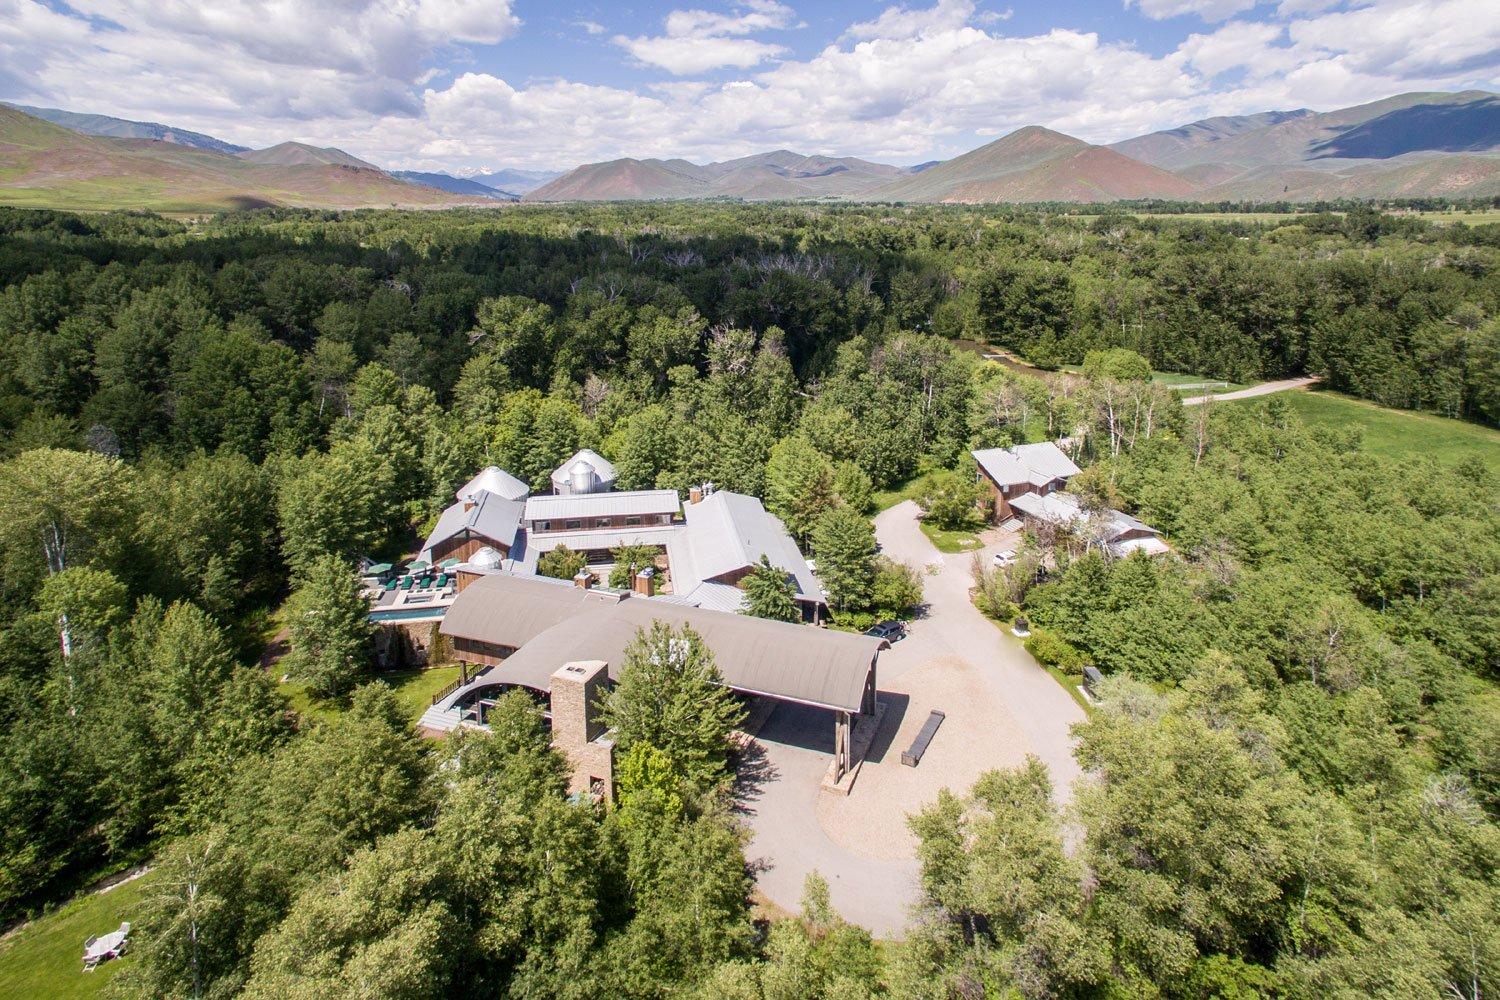 Bloom Ranch captures the majesty of its Idaho mountain setting and celebrates the agricultural heritage of the area.